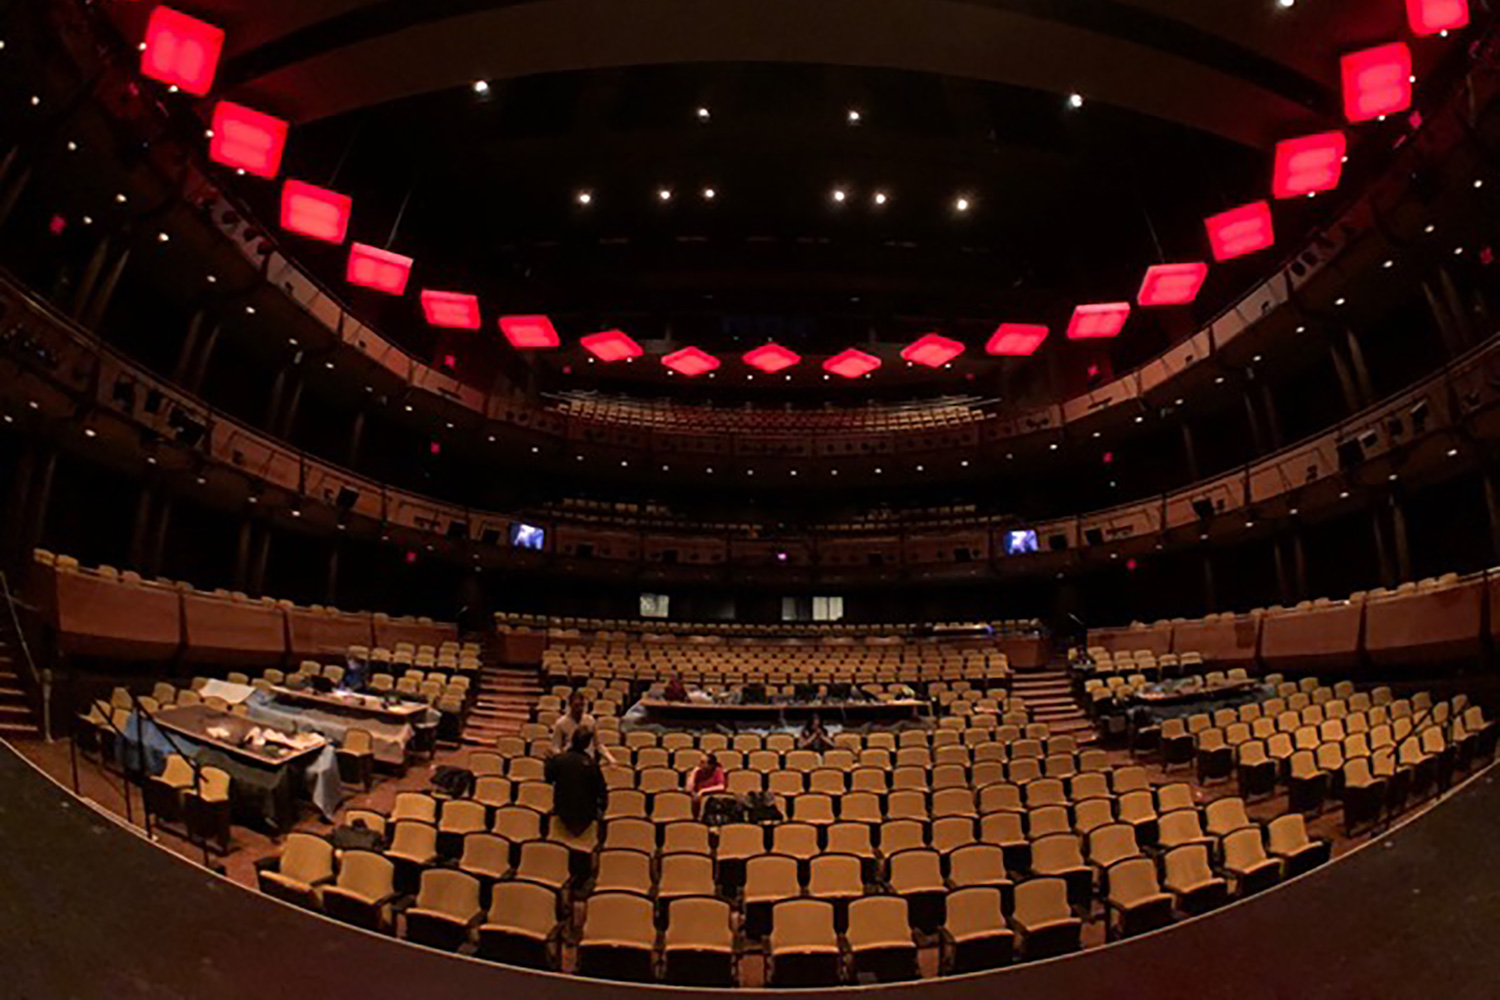 Jazz at Lincoln Center, acoustic design, isolation and internal room acoustics. Rose Hall Theater. Stage view fish eye.